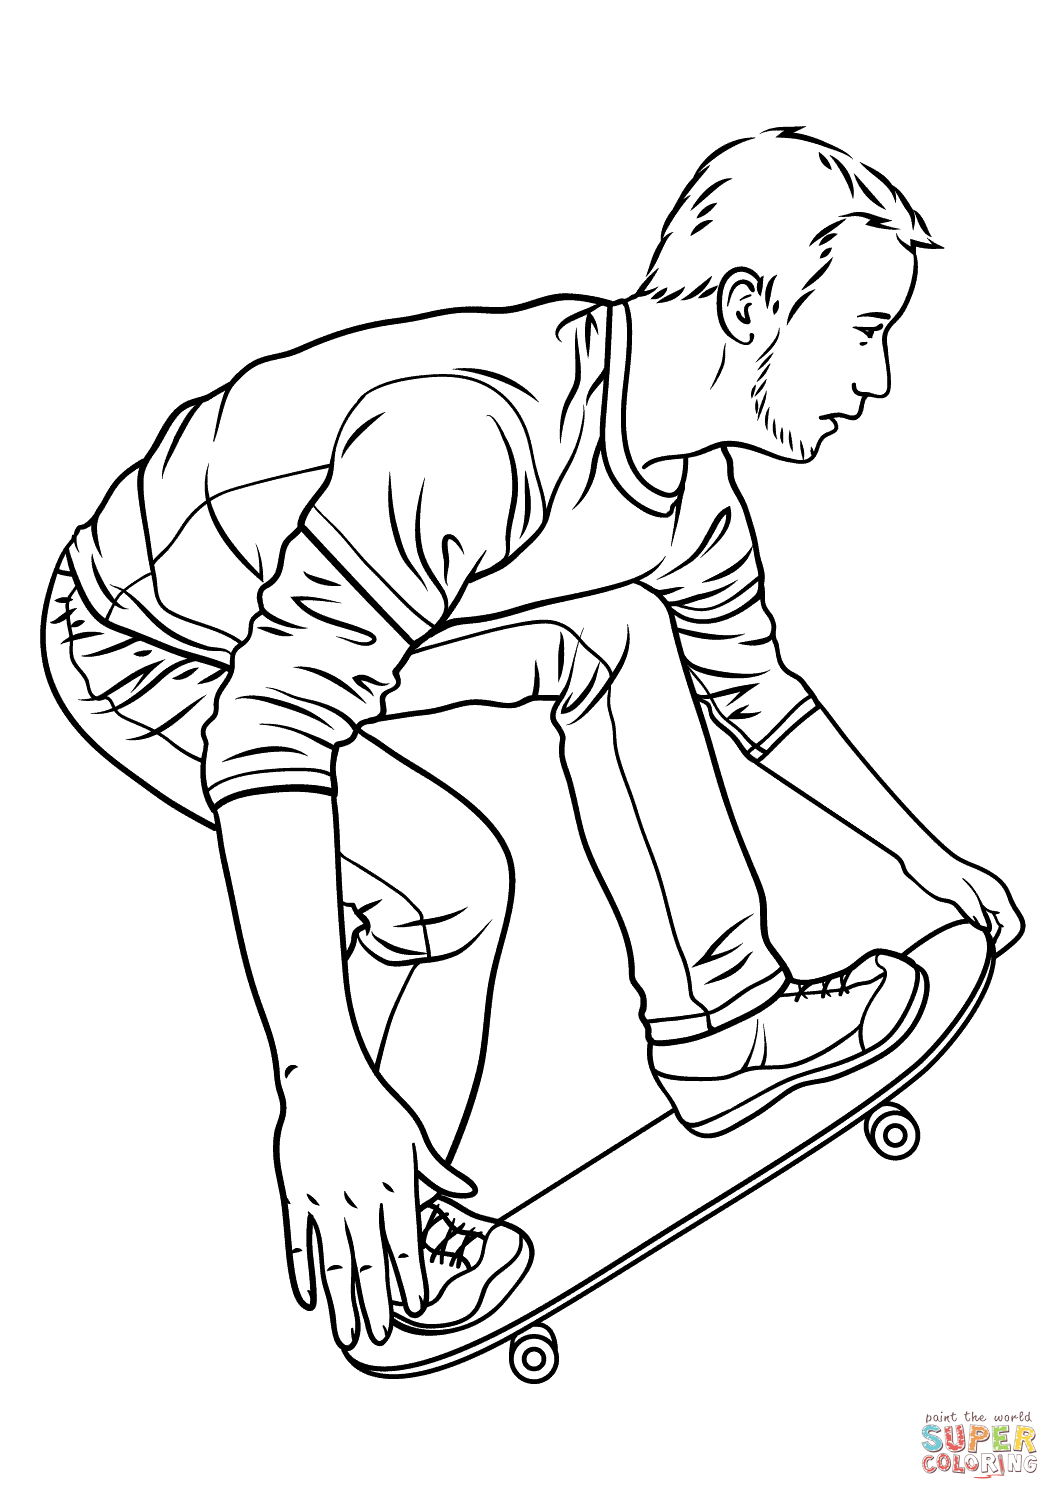 Penny Board Drawing At Getdrawings Free Download